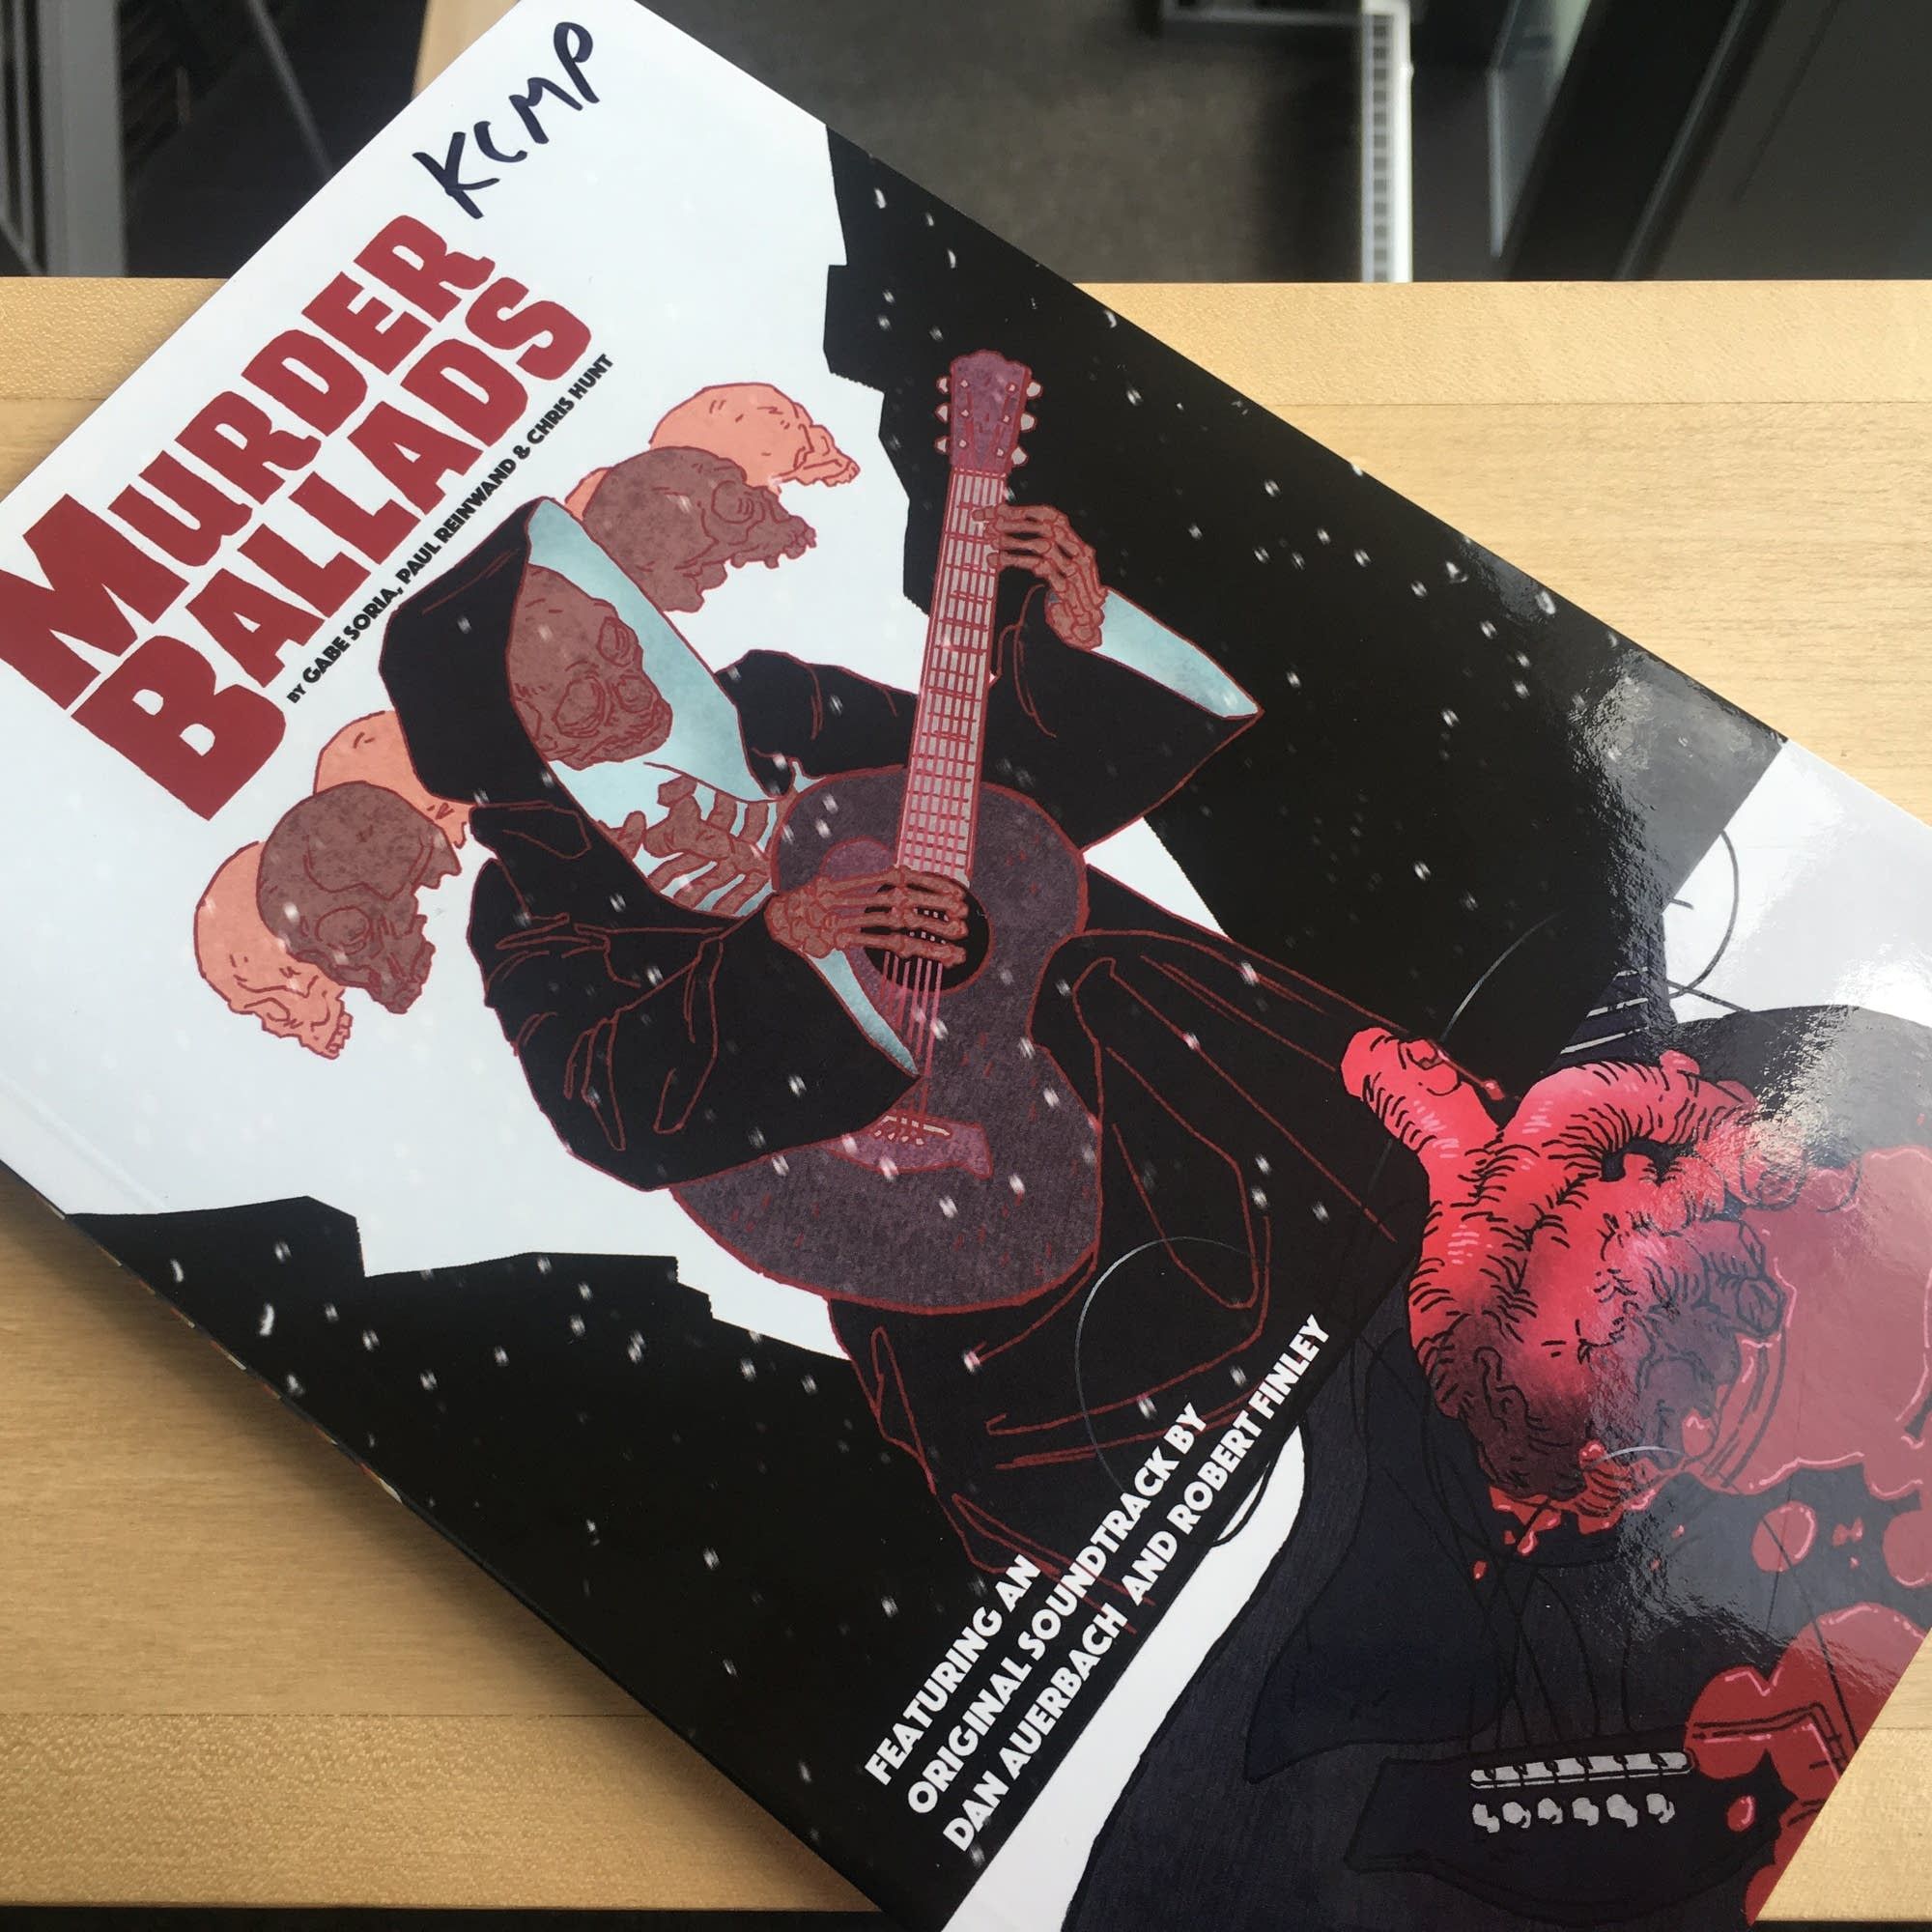 'Murder Ballads,' by Gabe Soria with Paul Reinwand and Chris Hunt.